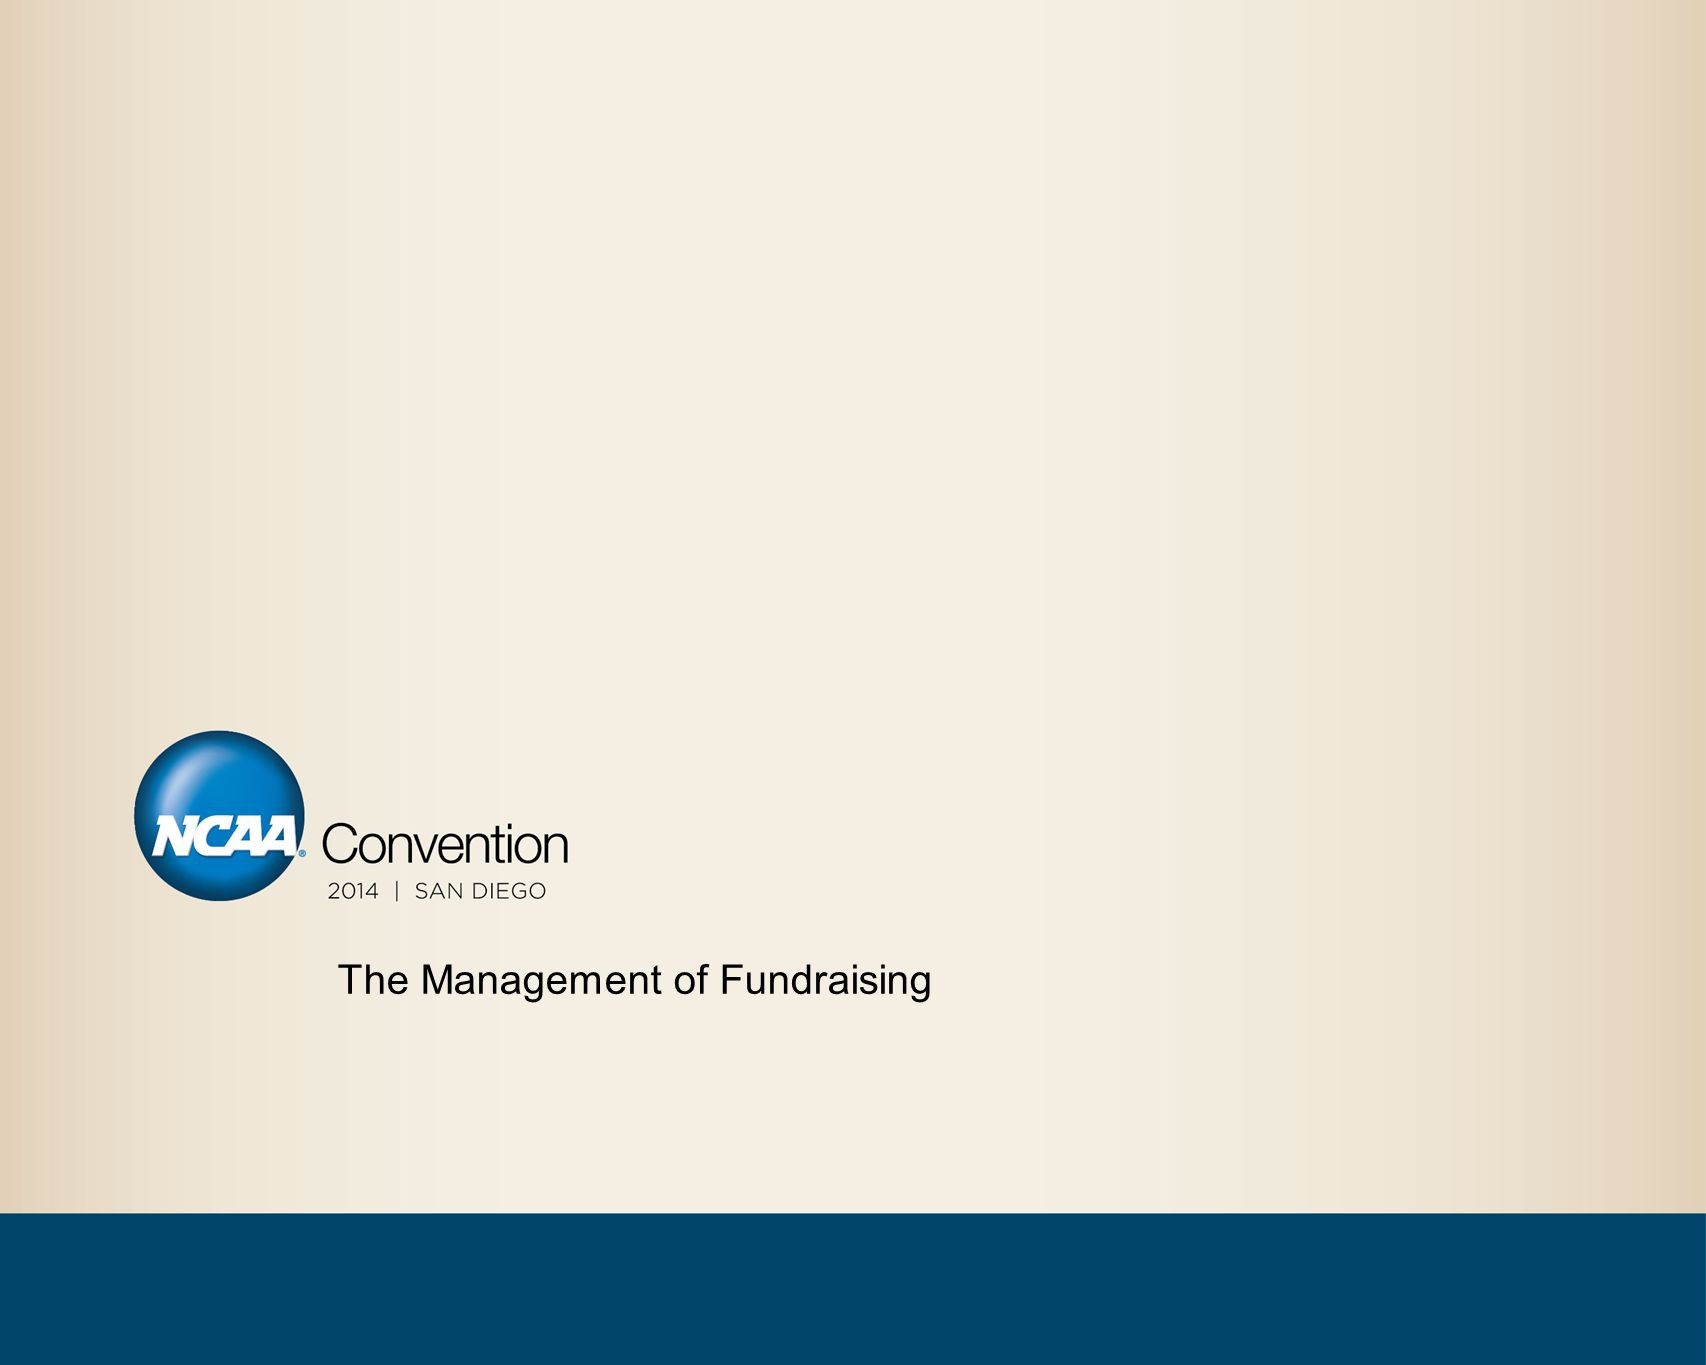 The Management of Fundraising